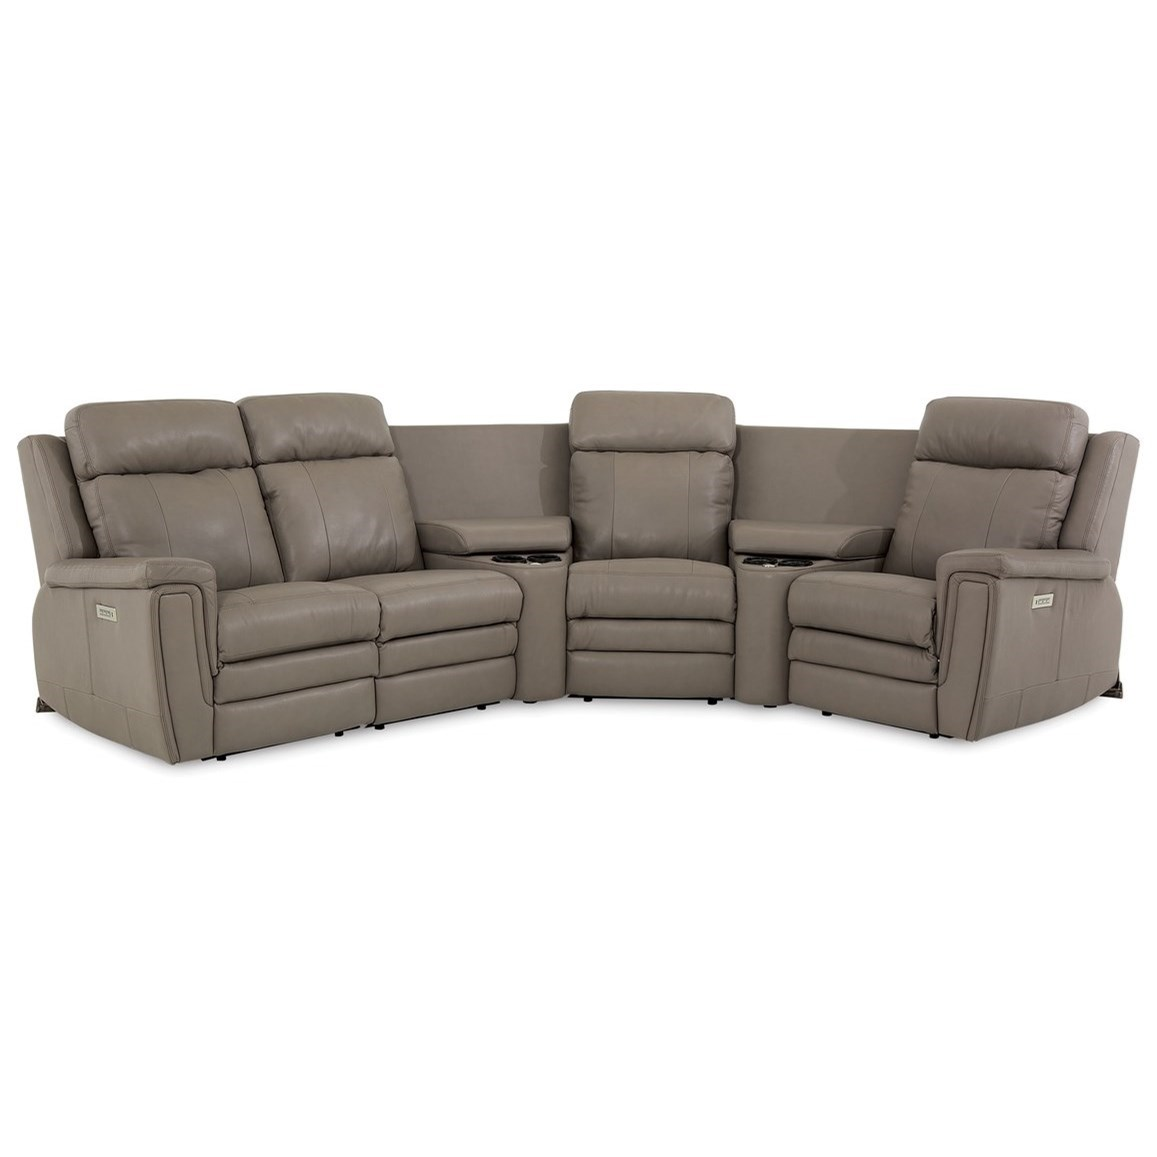 Asher Power Reclining Section with Power Headrests by Palliser at Novello Home Furnishings